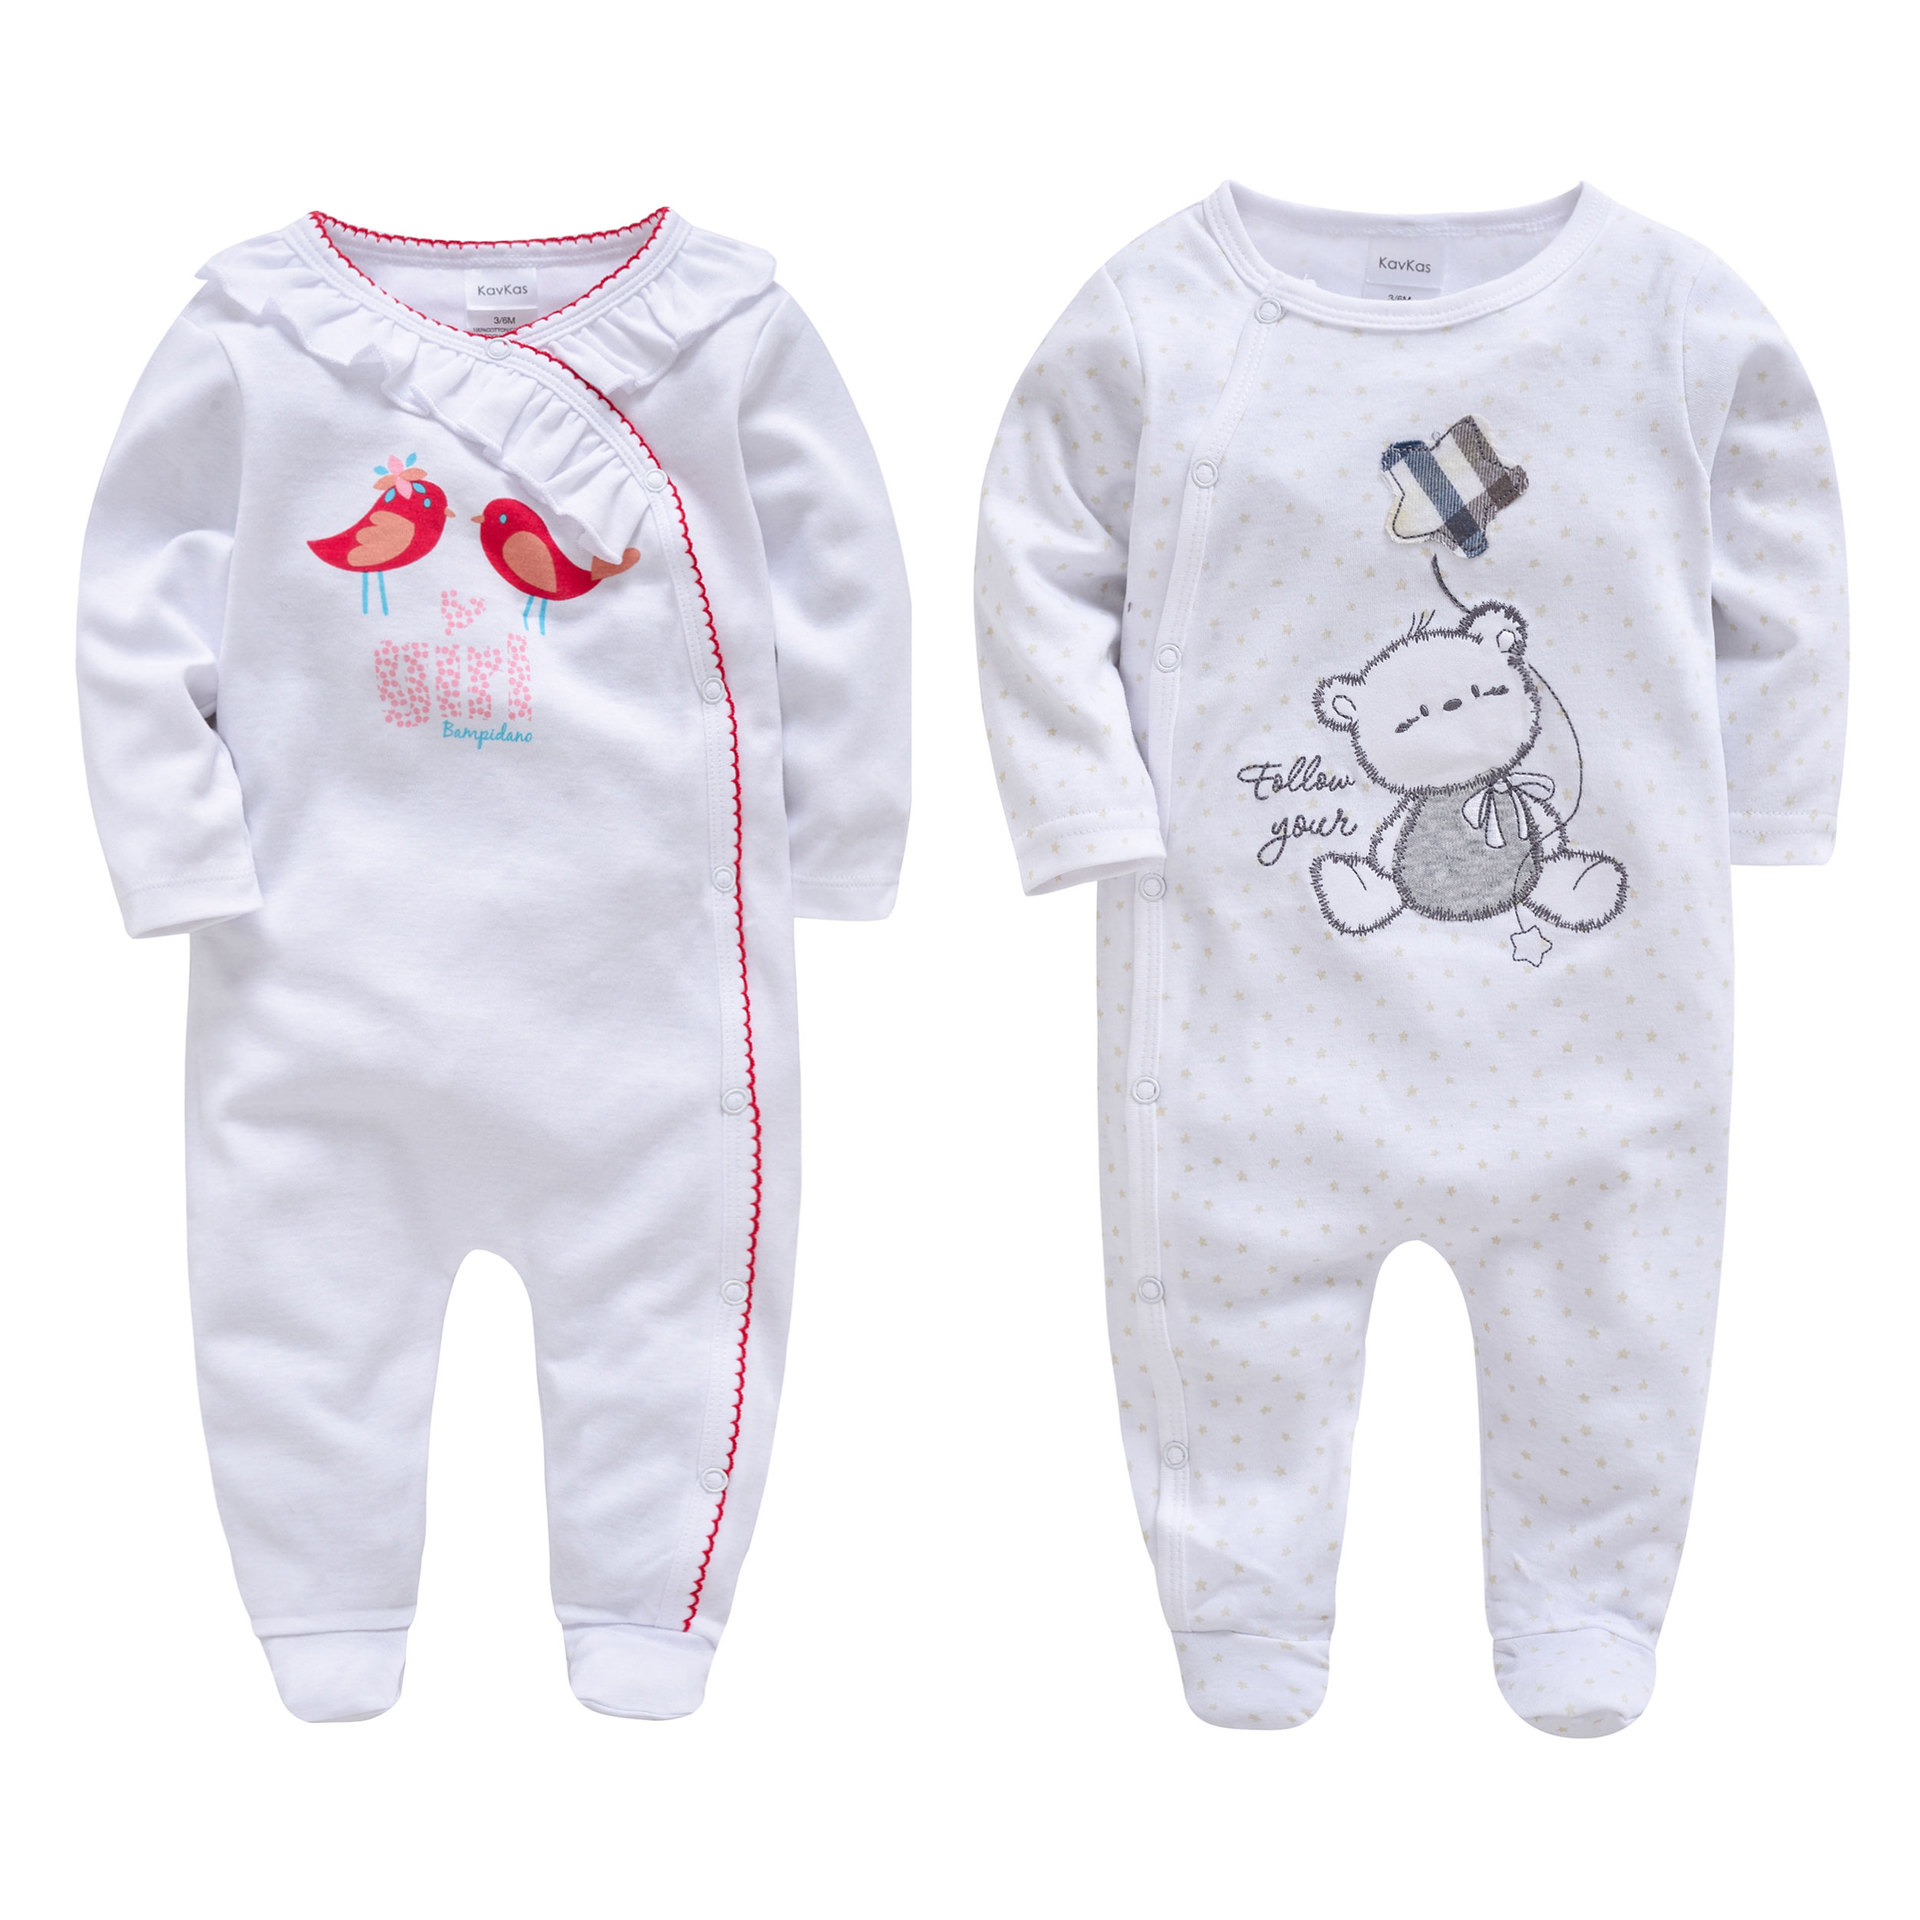 Baby Clothing 2018 Autumn New Newborn jumpsuits Baby Boy Girl Romper Clothes Long Sleeve Infant Product One Piece Rompers